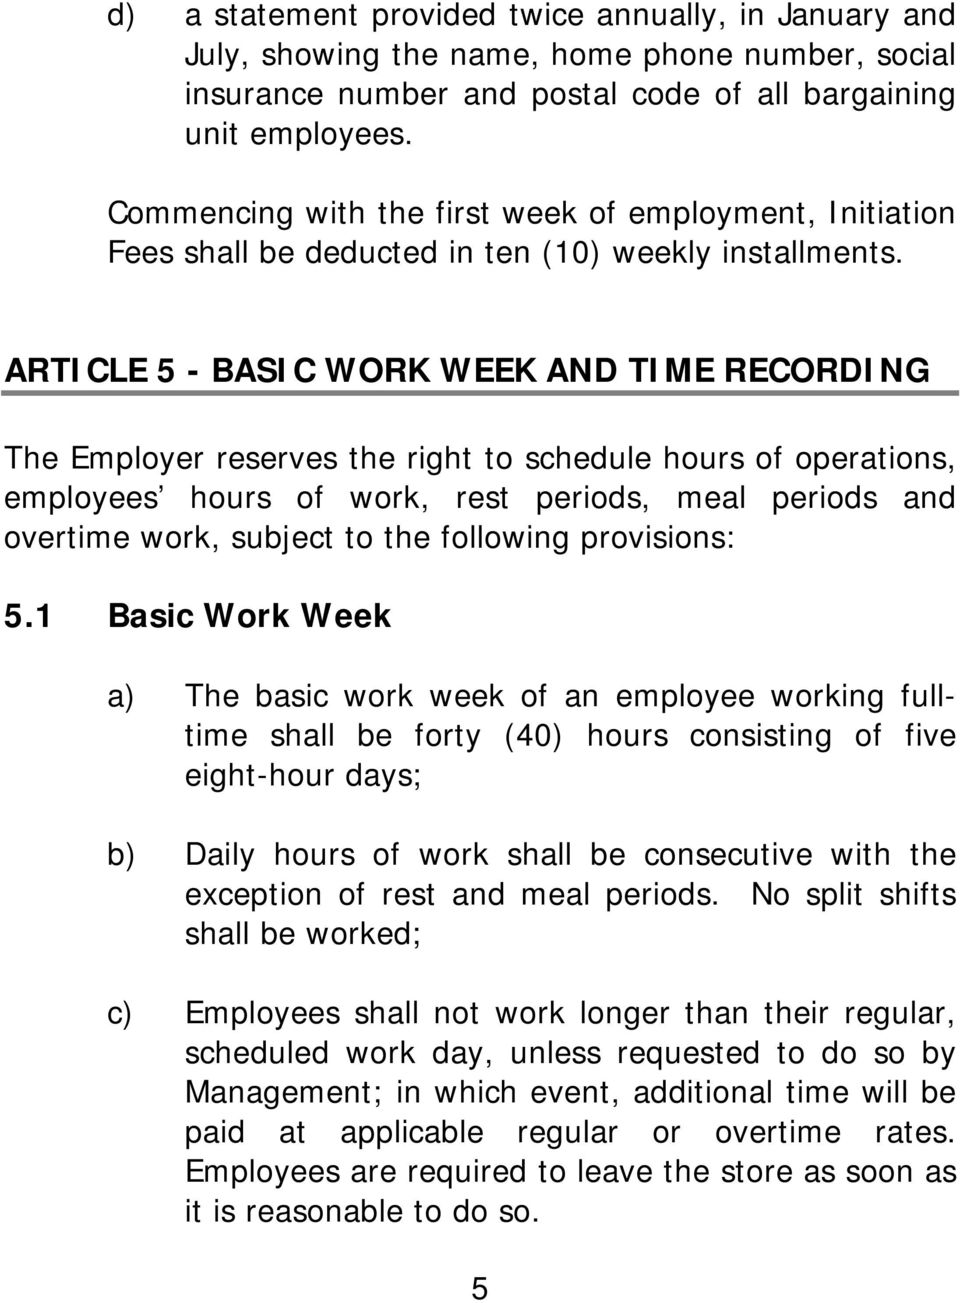 ARTICLE 5 - BASIC WORK WEEK AND TIME RECORDING The Employer reserves the right to schedule hours of operations, employees hours of work, rest periods, meal periods and overtime work, subject to the